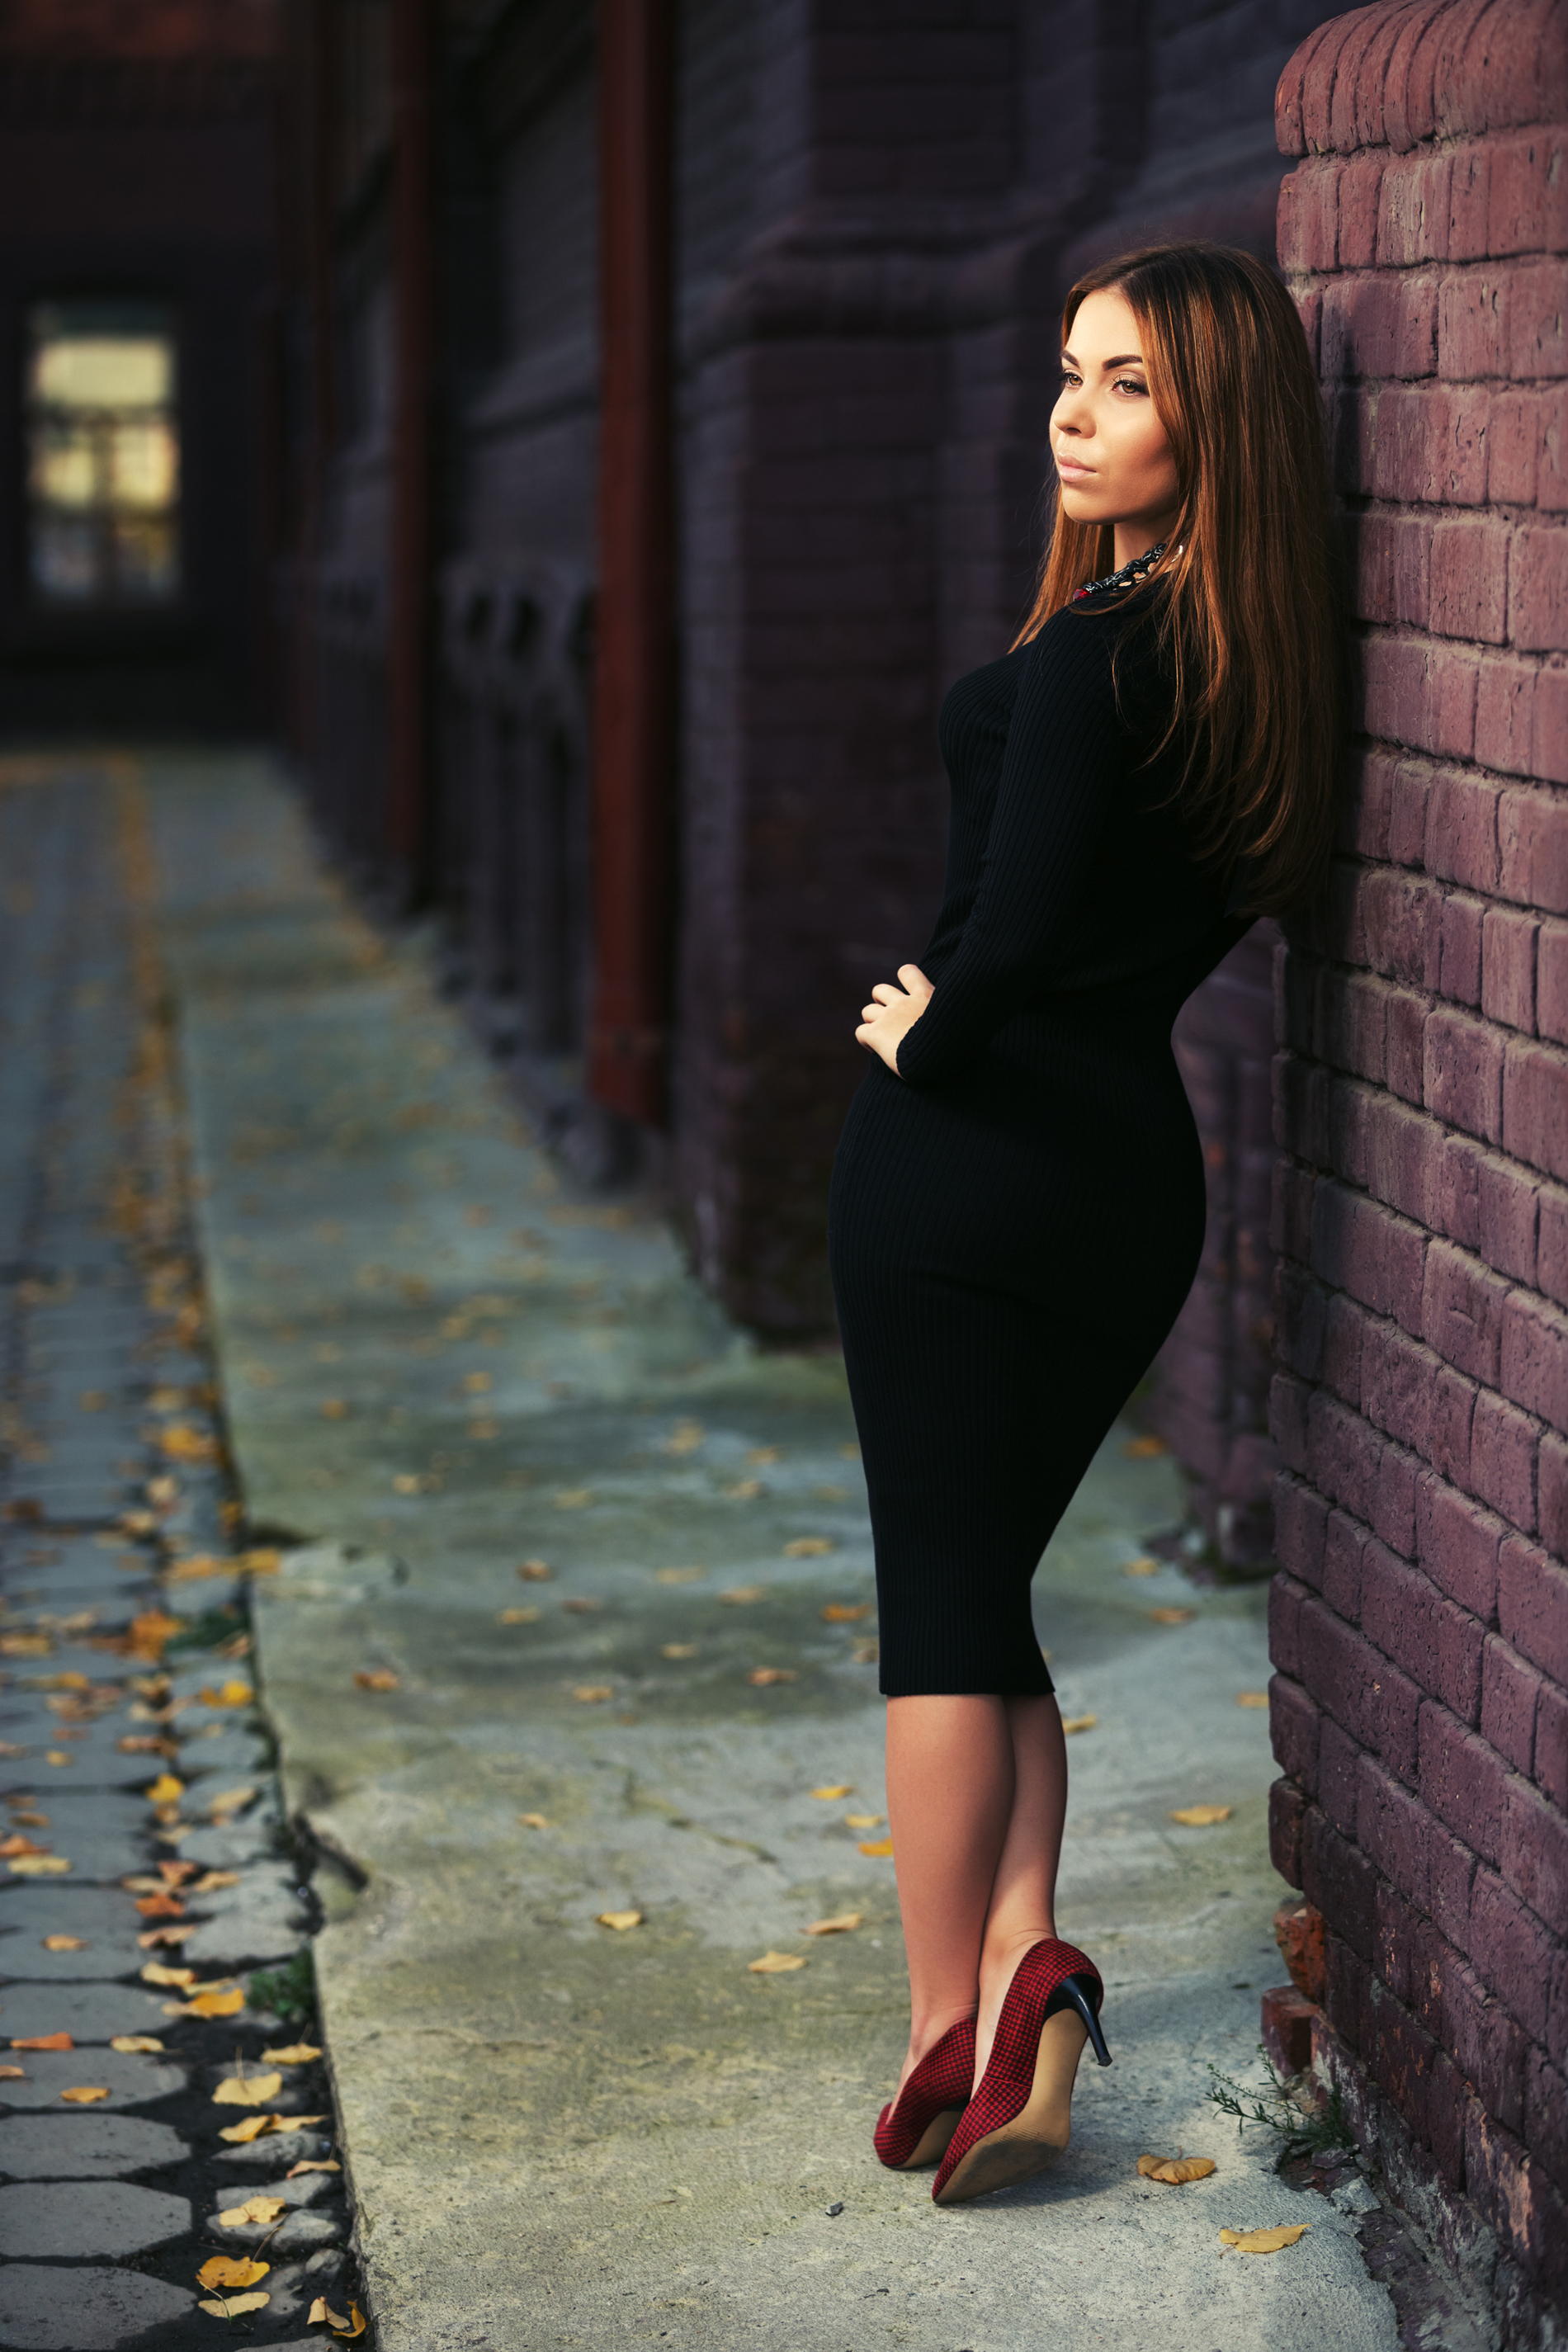 Street-side leaning against the wall of glamour model 52956